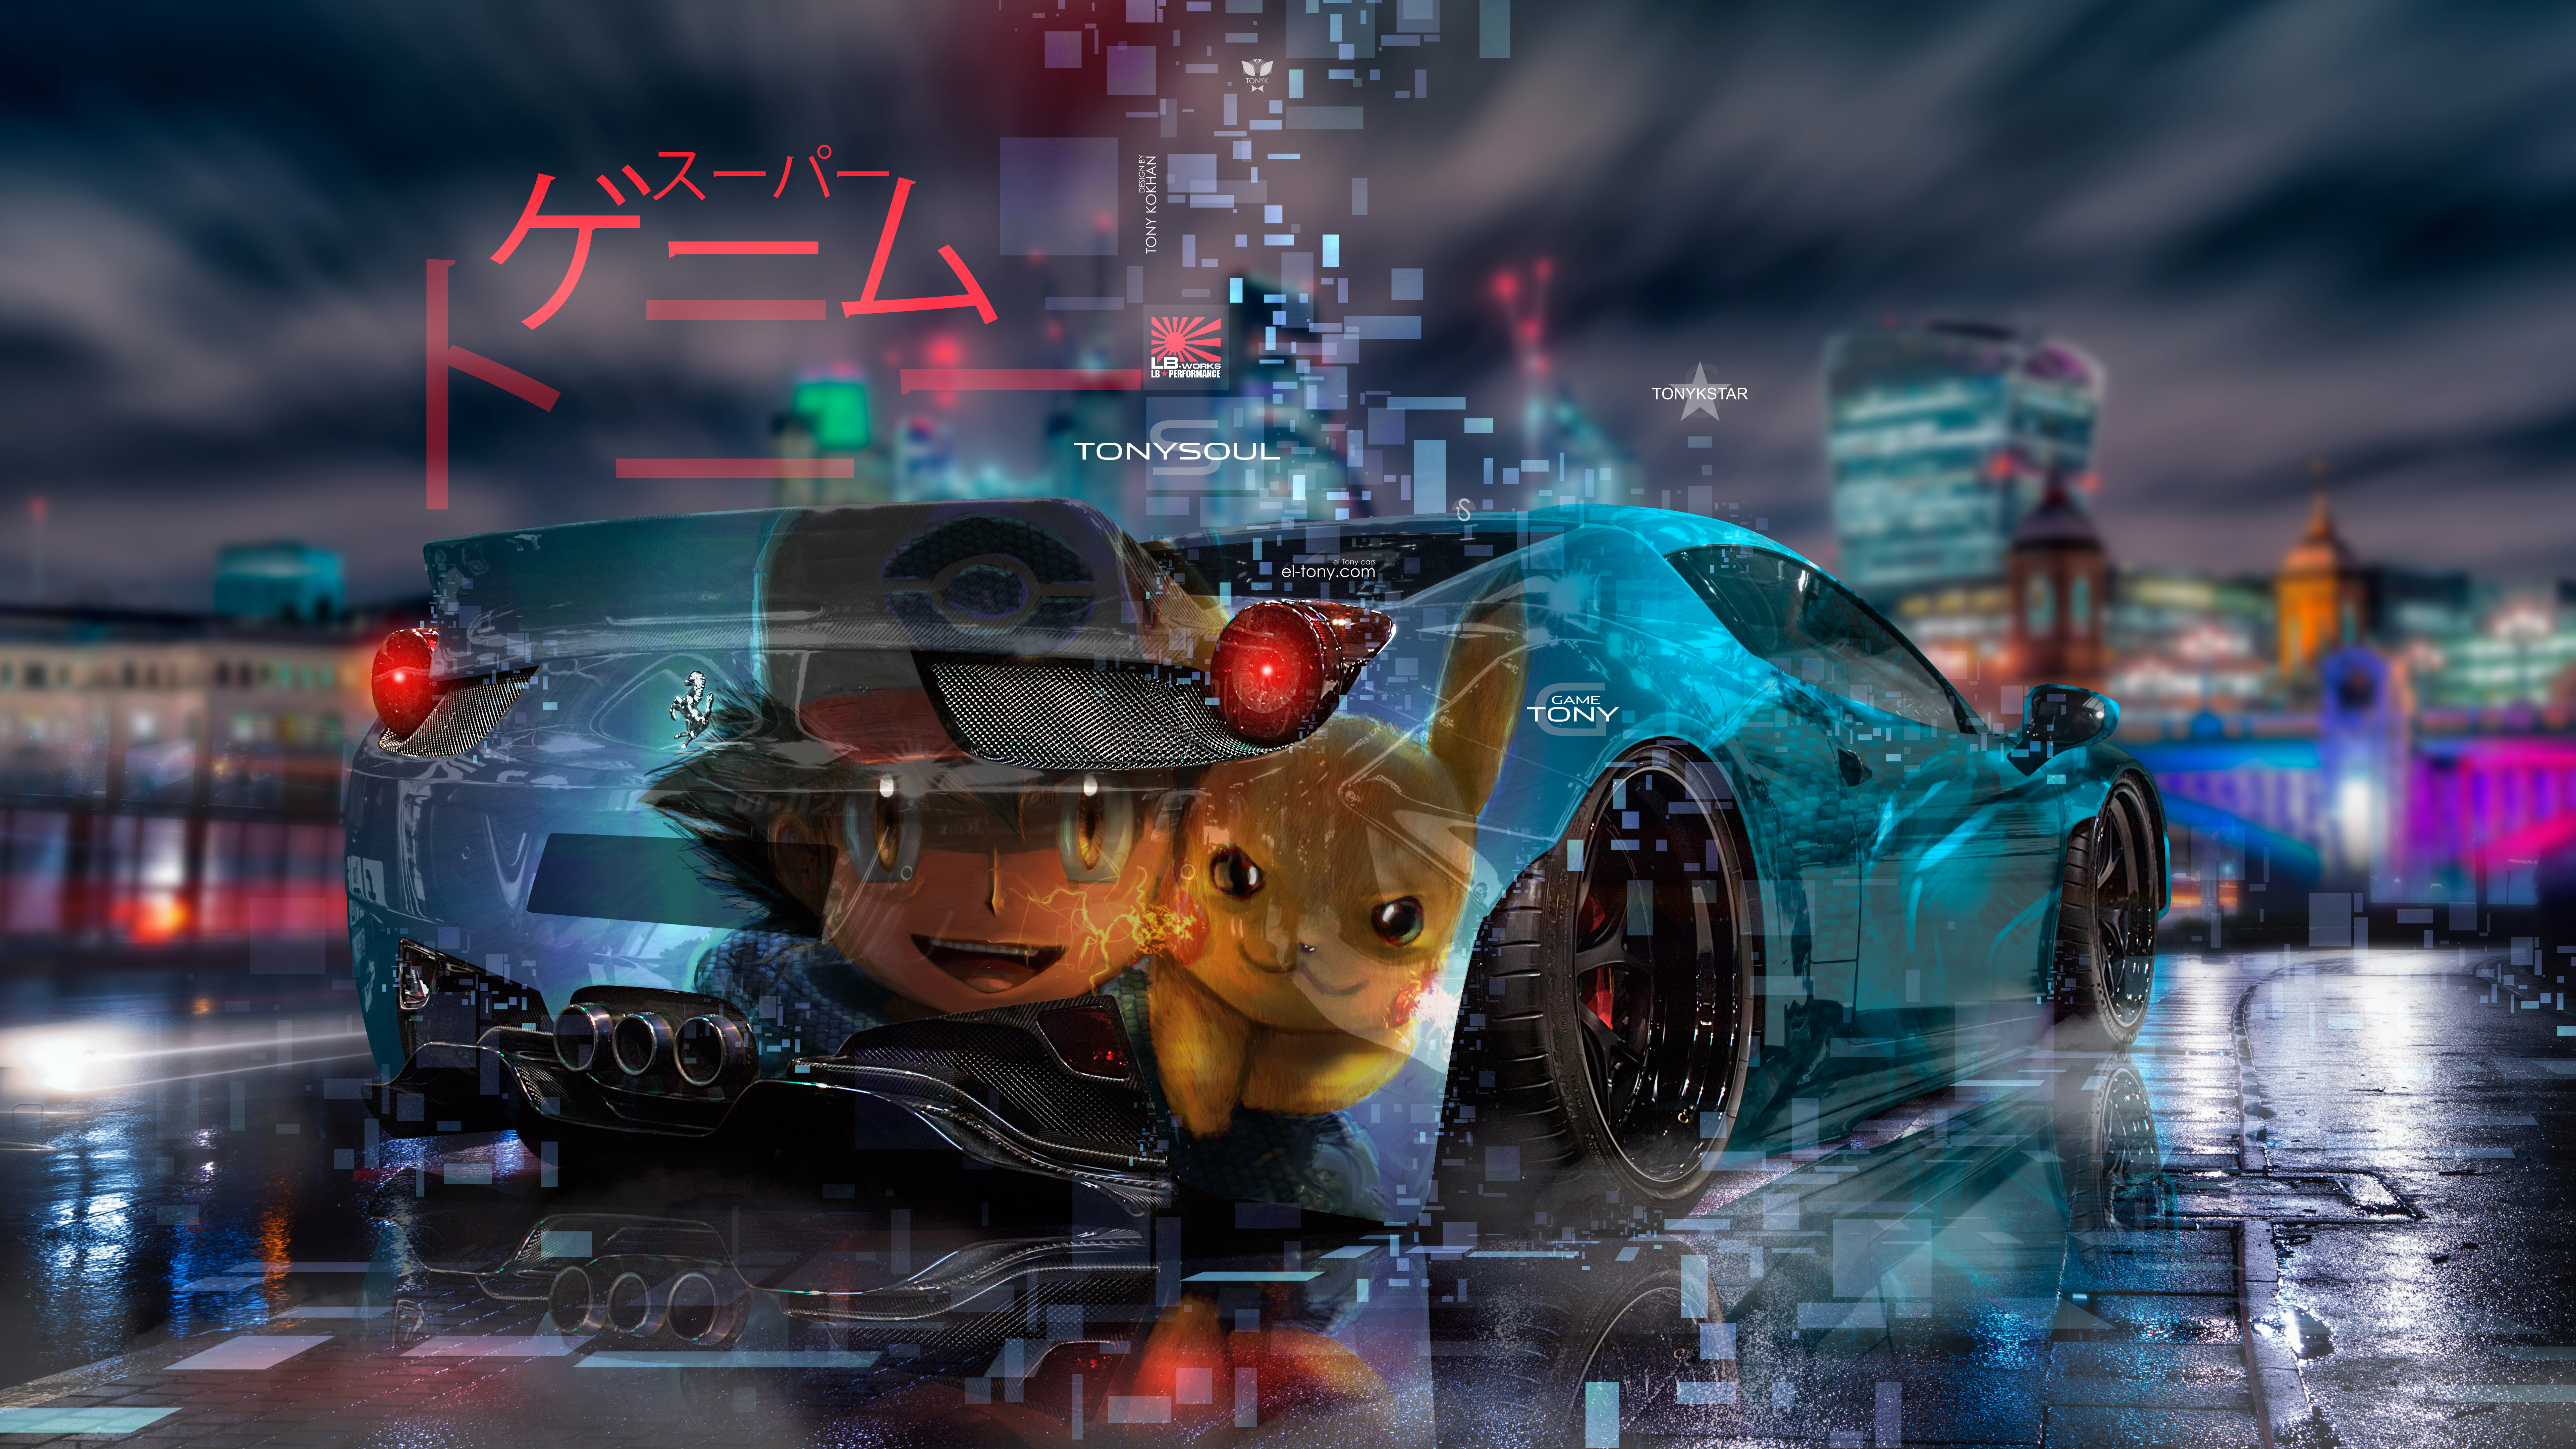 Ferrari-458-Italia-Liberty-Walk-Tuning-Anime-Ash-Pikachu-Super-Game-Tony-Night-City-TonykStar-Art-Car-2019-Multicolors-8K-Wallpapers-design-by-Tony-Kokhan-www.el-tony.com-image